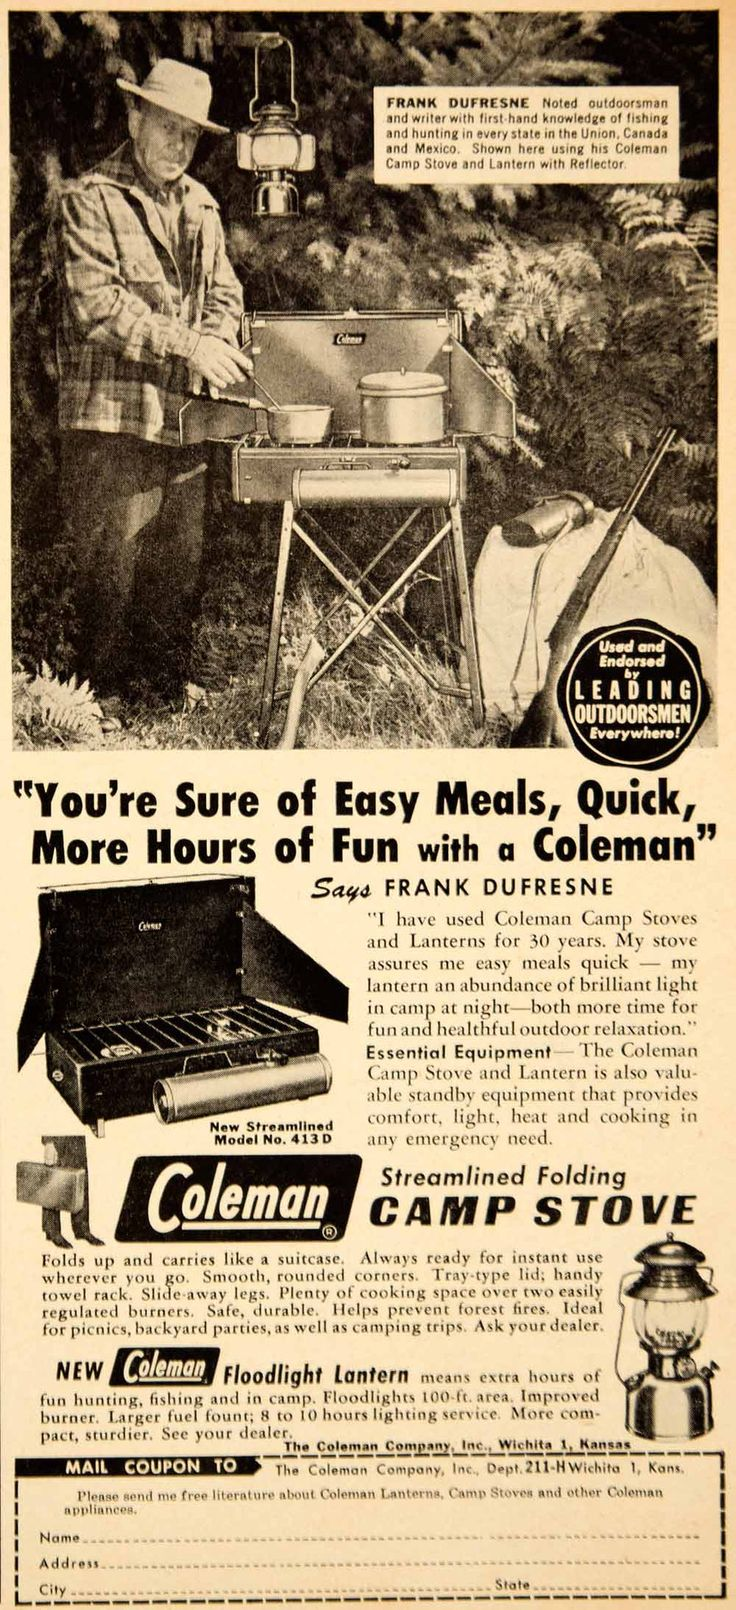 1951 Ad Coleman Camp Stove Floodlight Lantern Frank Dufresne Outdoorsman YHF1